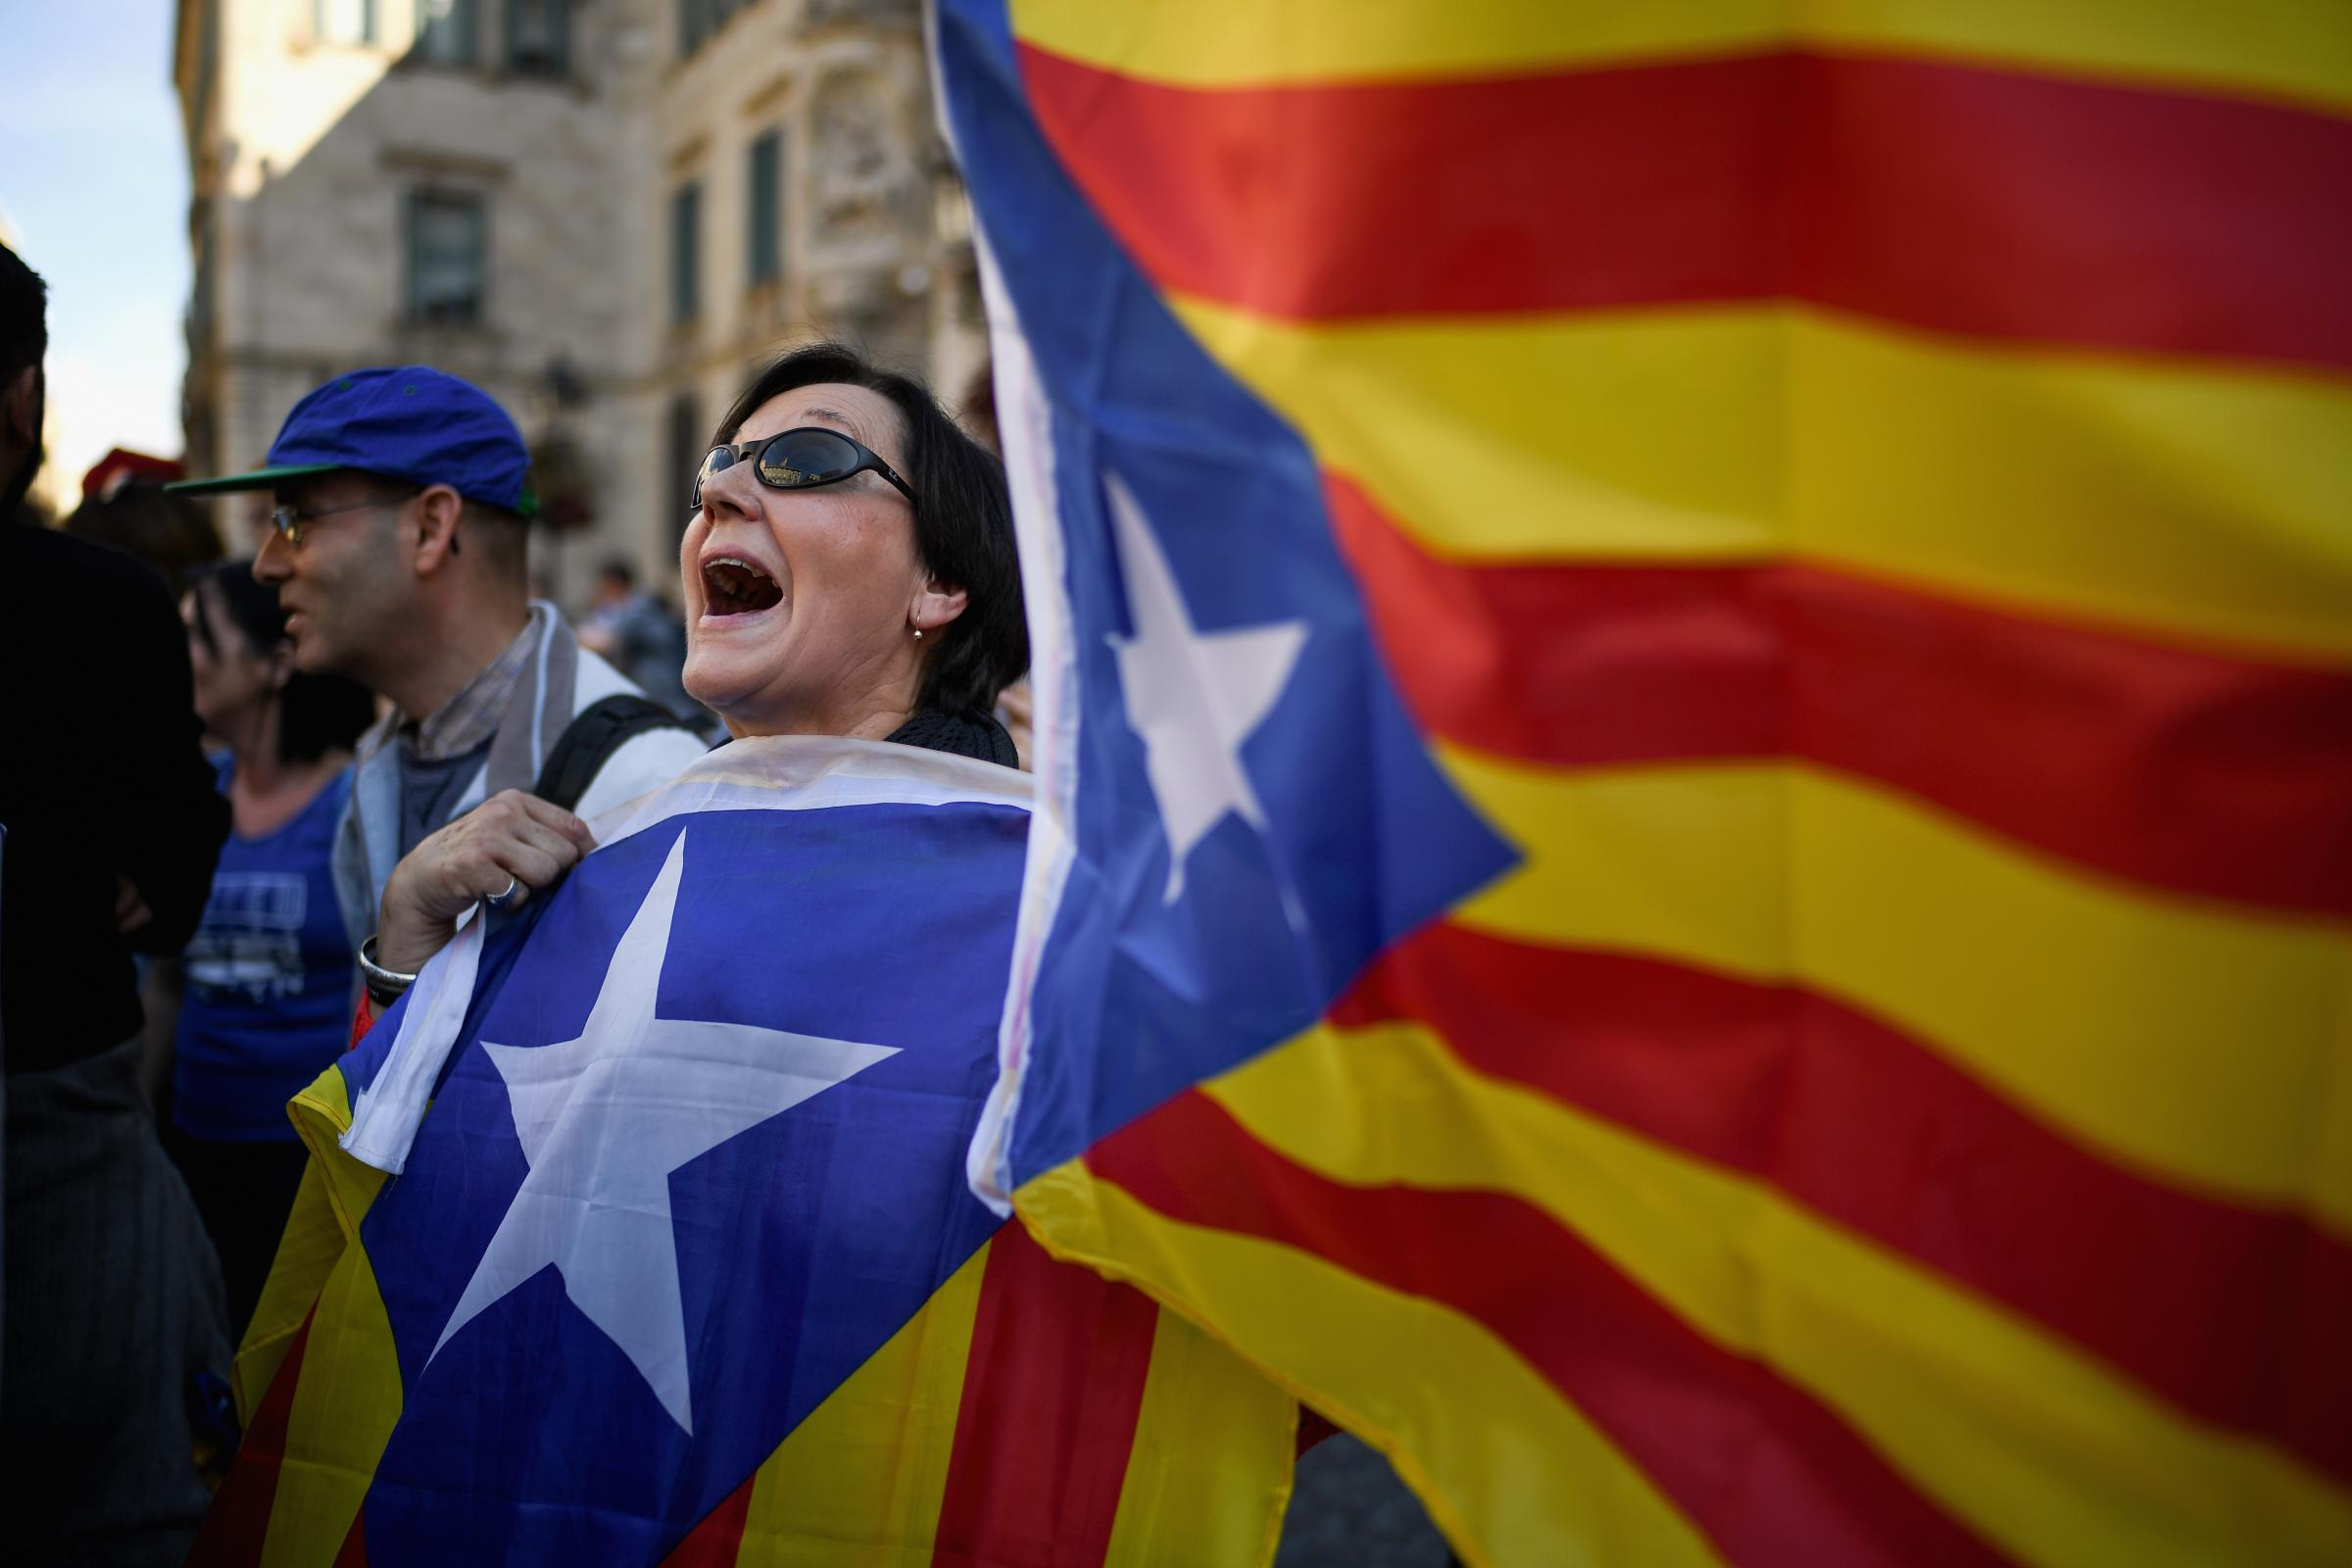 Catalan voters went to the polls in an election called by the Spanish government